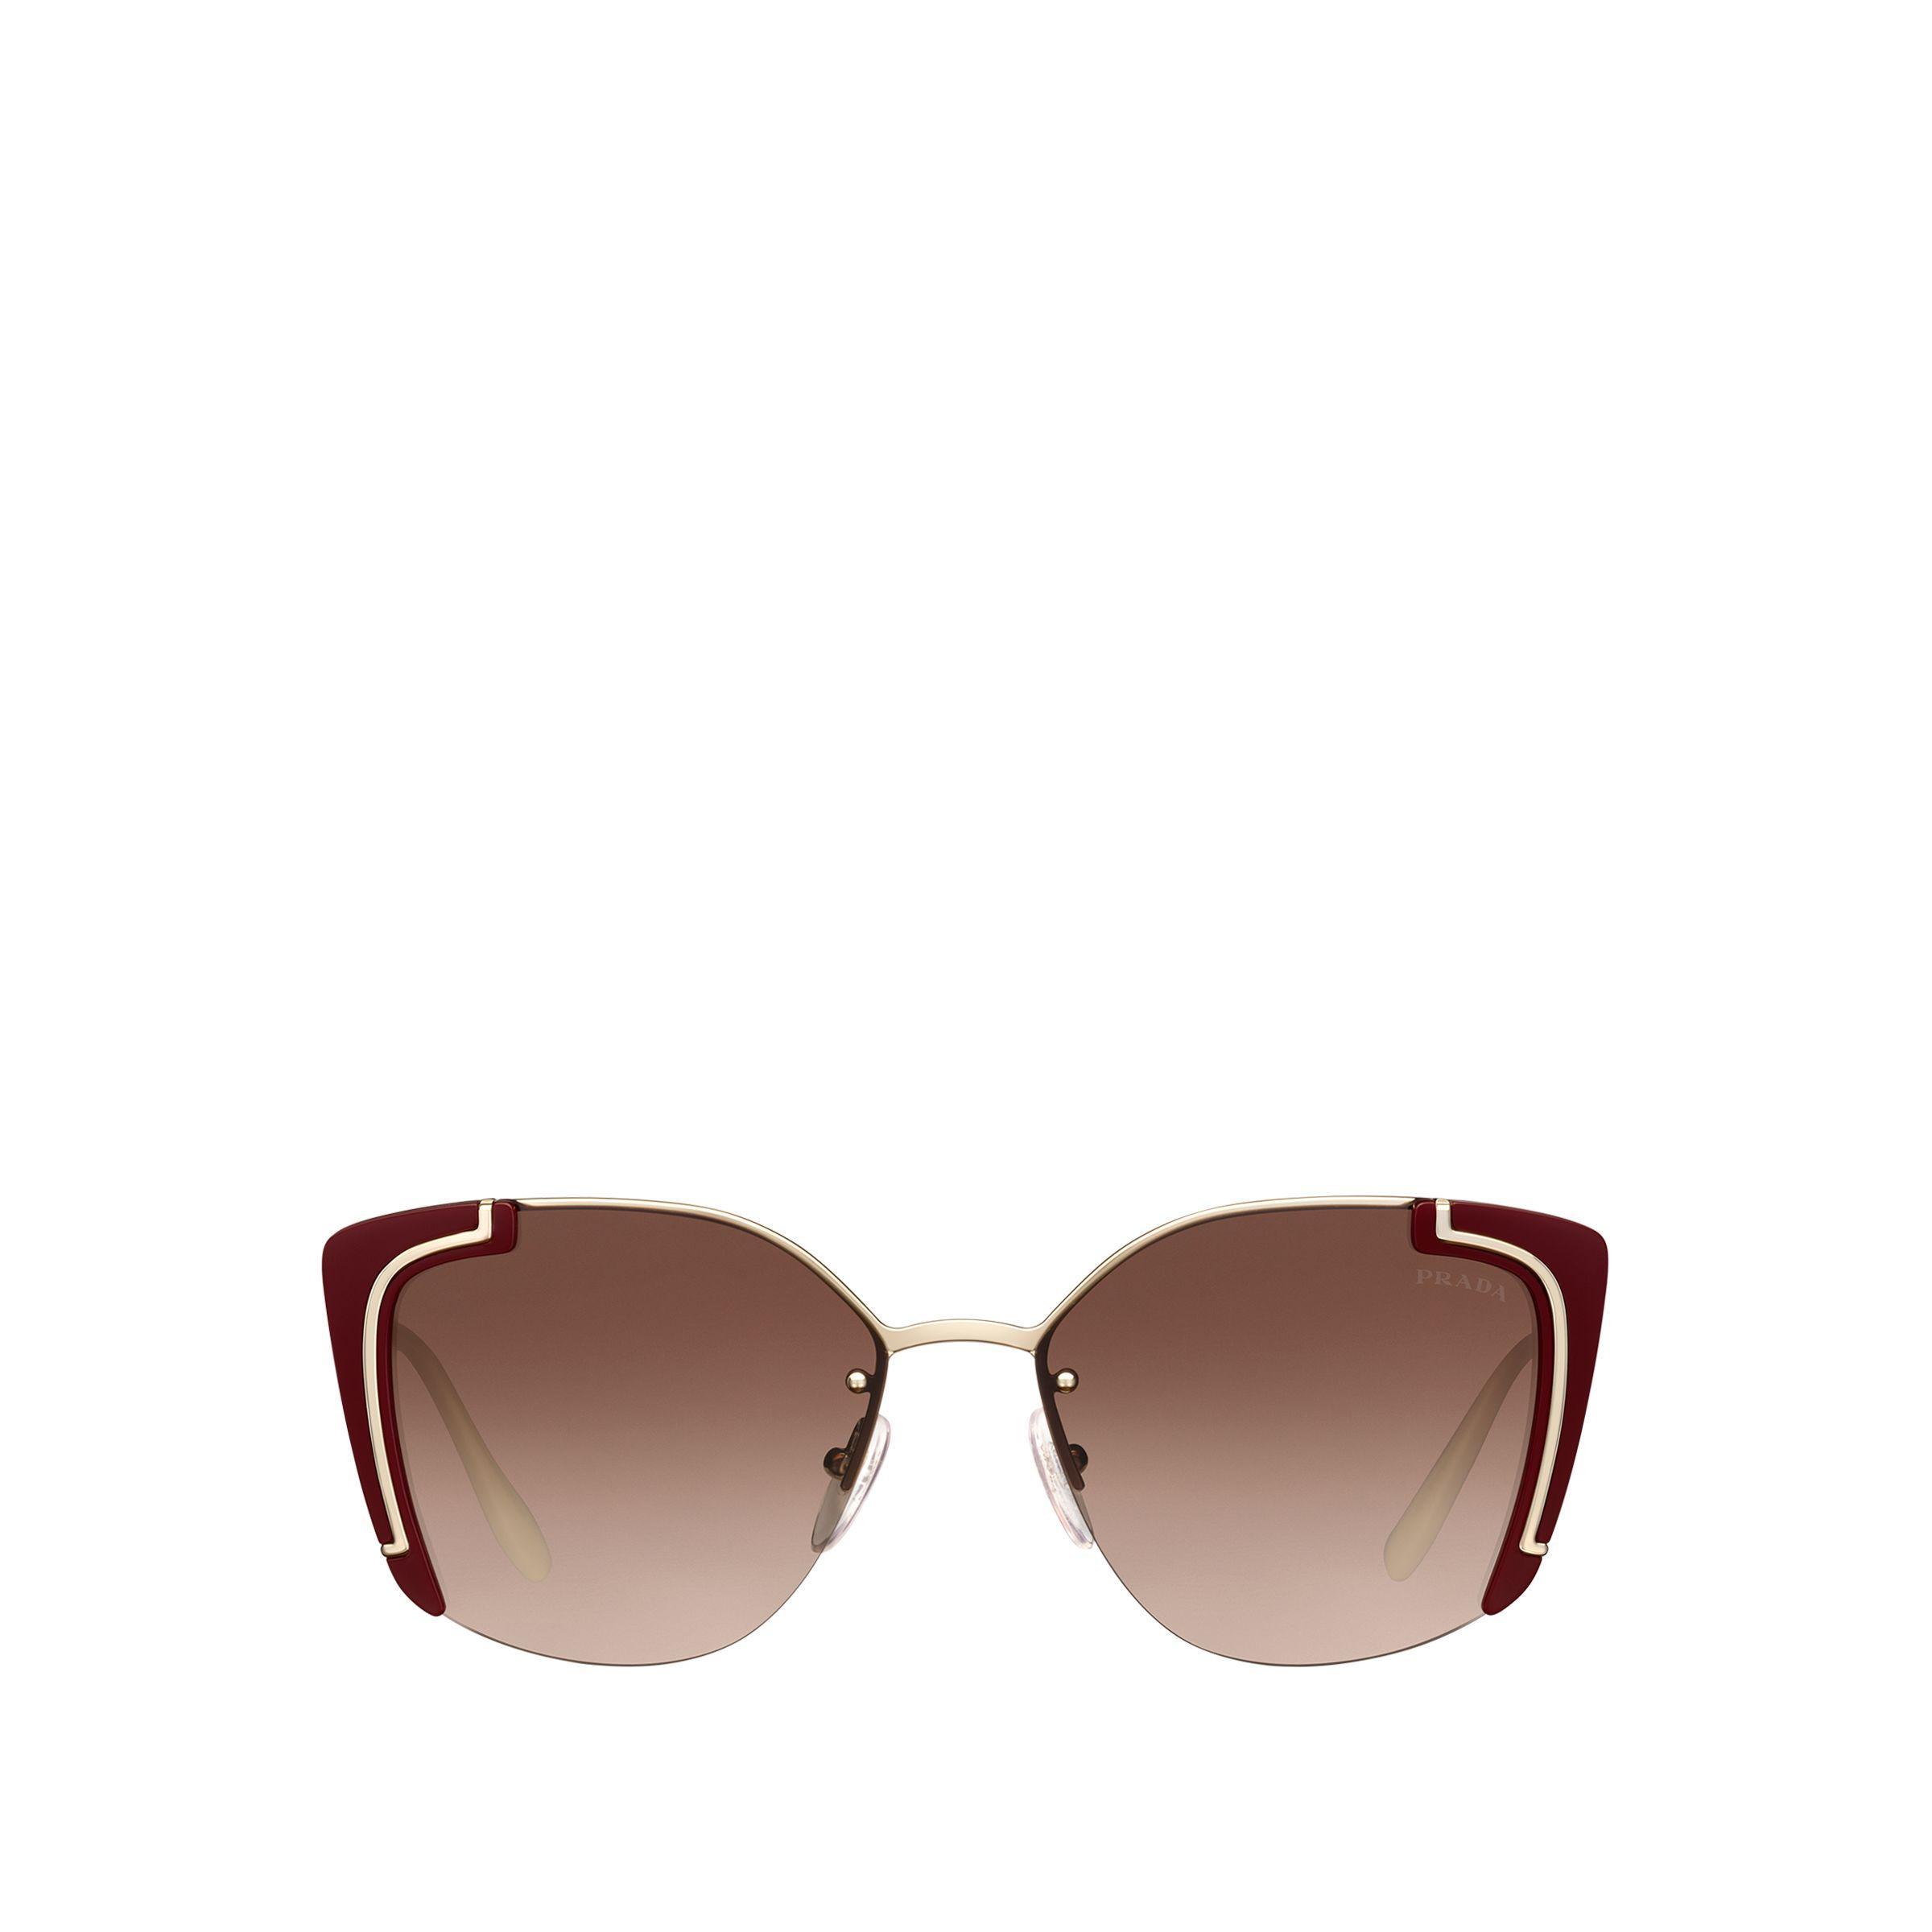 810c86adc6c Prada - Brown Ornate Sunglasses - Lyst. View fullscreen